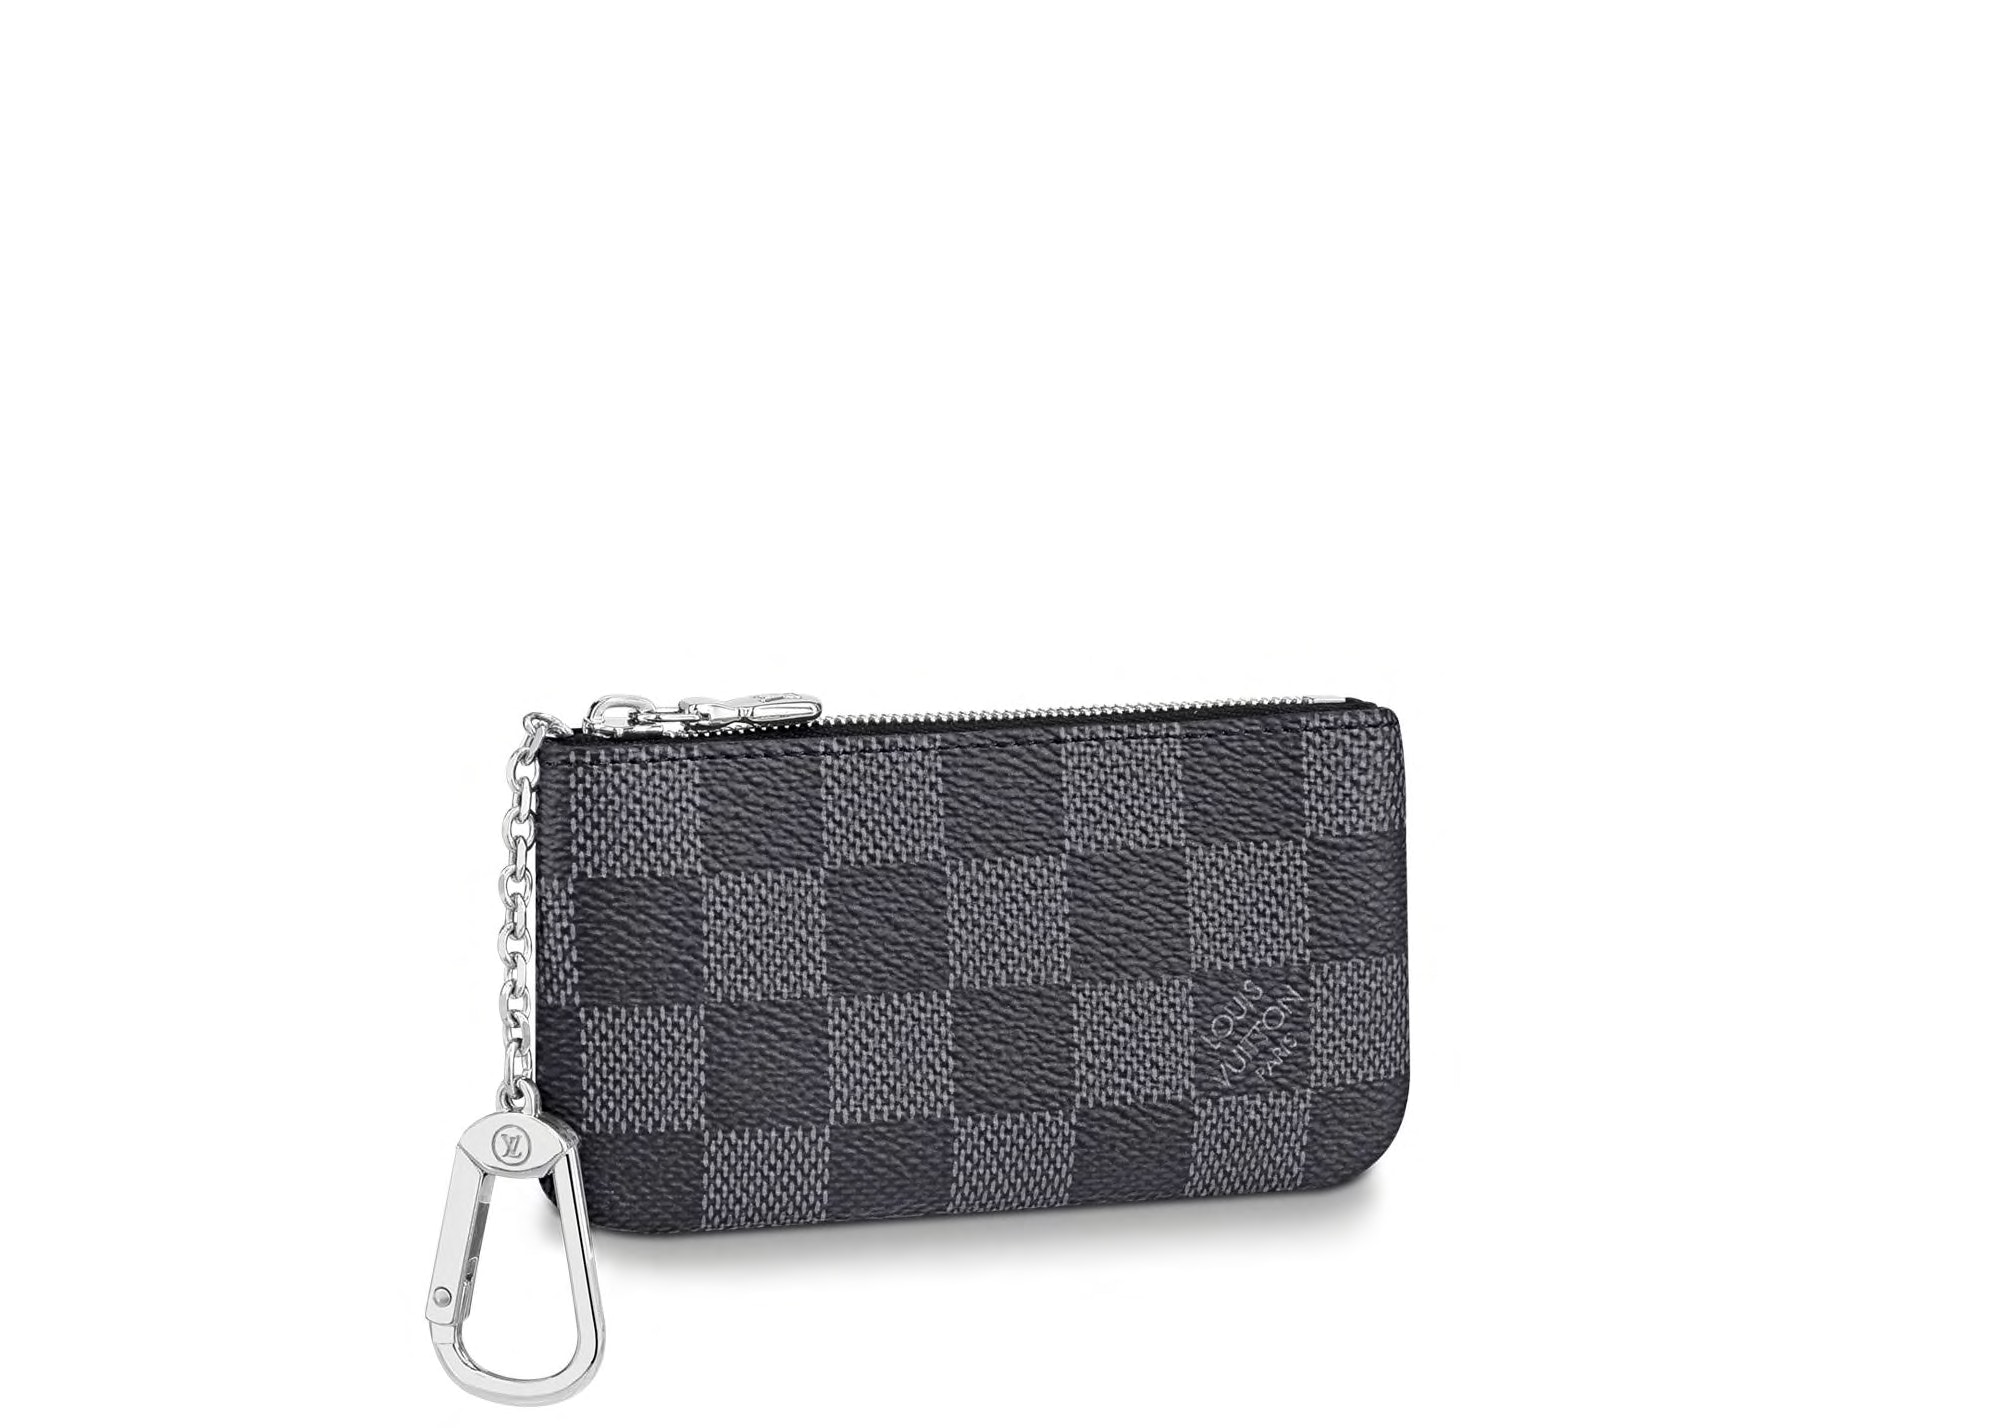 Louis Vuitton Pochette Cle Key Pouch Damier Graphite Black/Gray